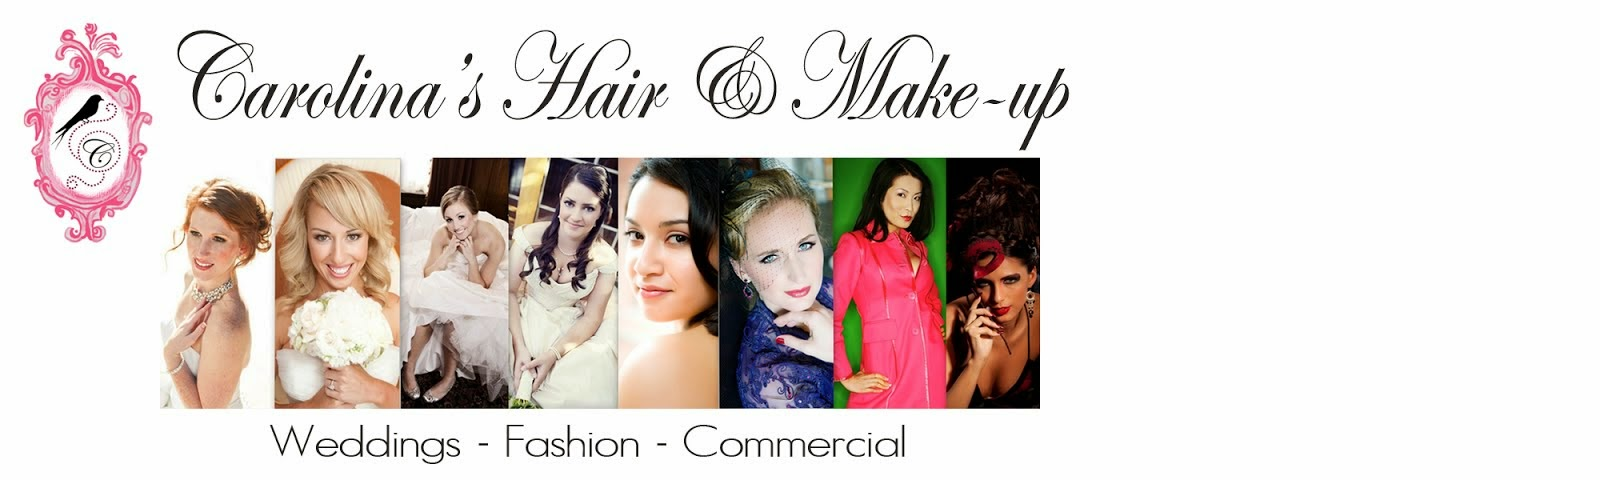 Carolinas hair and make-up/Designs